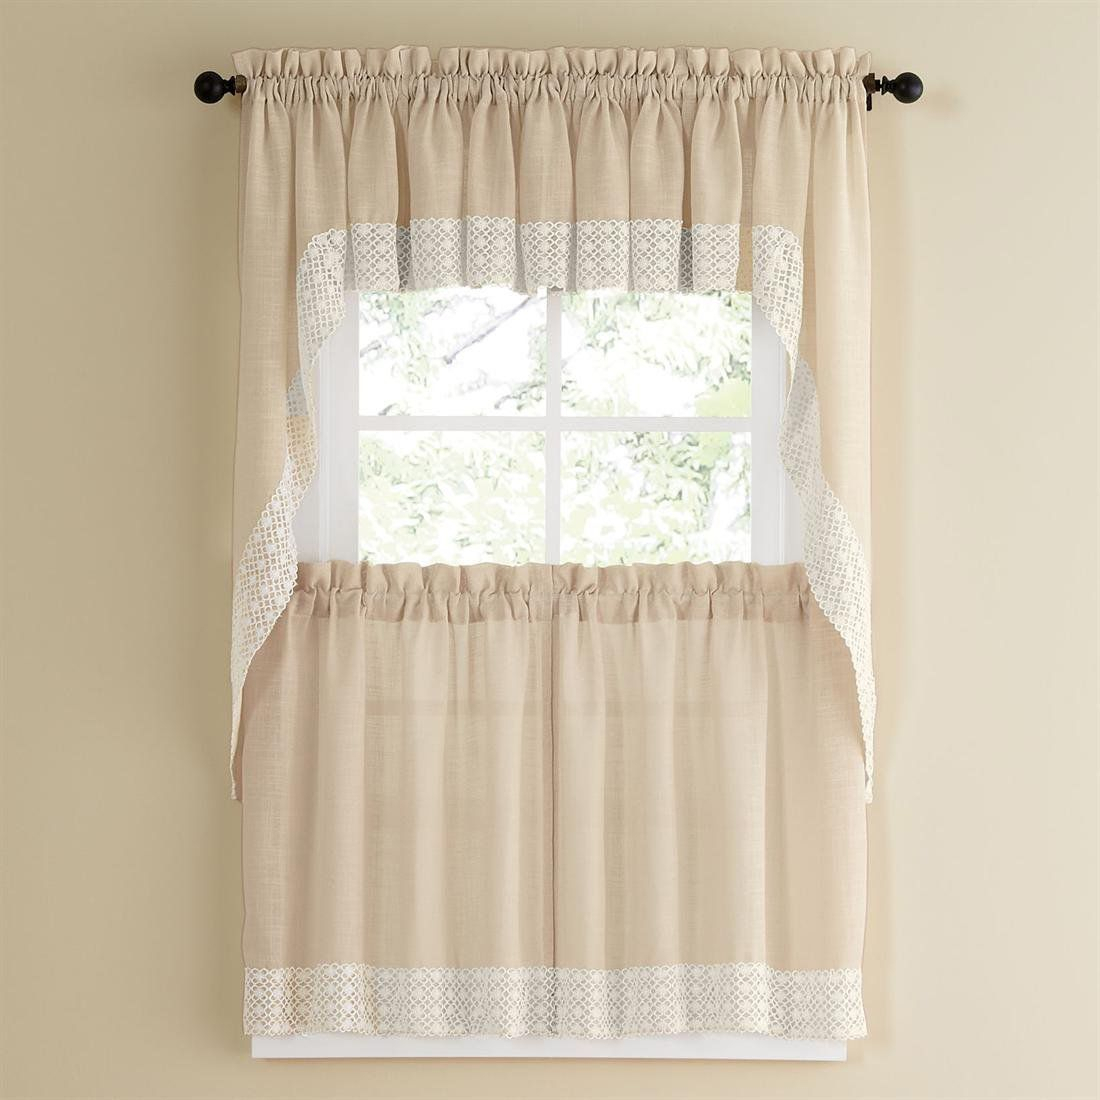 Popular Photo of Country Style Curtain Parts With White Daisy Lace Accent